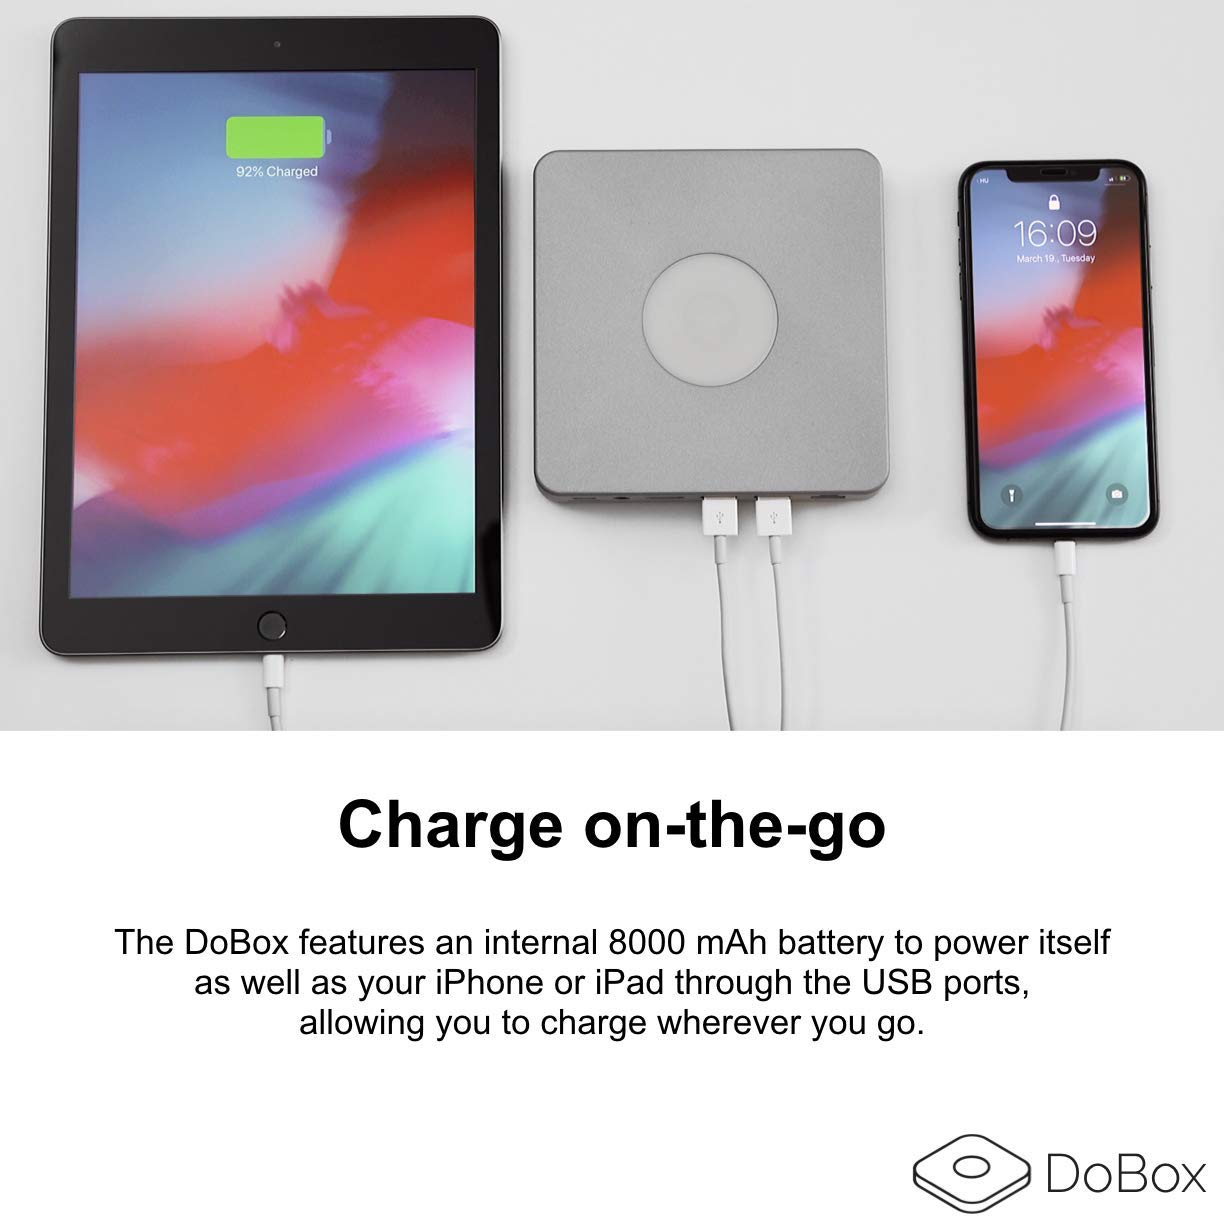 DoBox Portable Wireless Hub for iPhone and iPad. 9-in-1 Wireless Adapter with 32GB Internal Storage, USB-C, Ethernet, 2xUSB, Micro SD, Audio Out, HDMI, Bluetooth and Portable Charger by DoBox (Image #3)